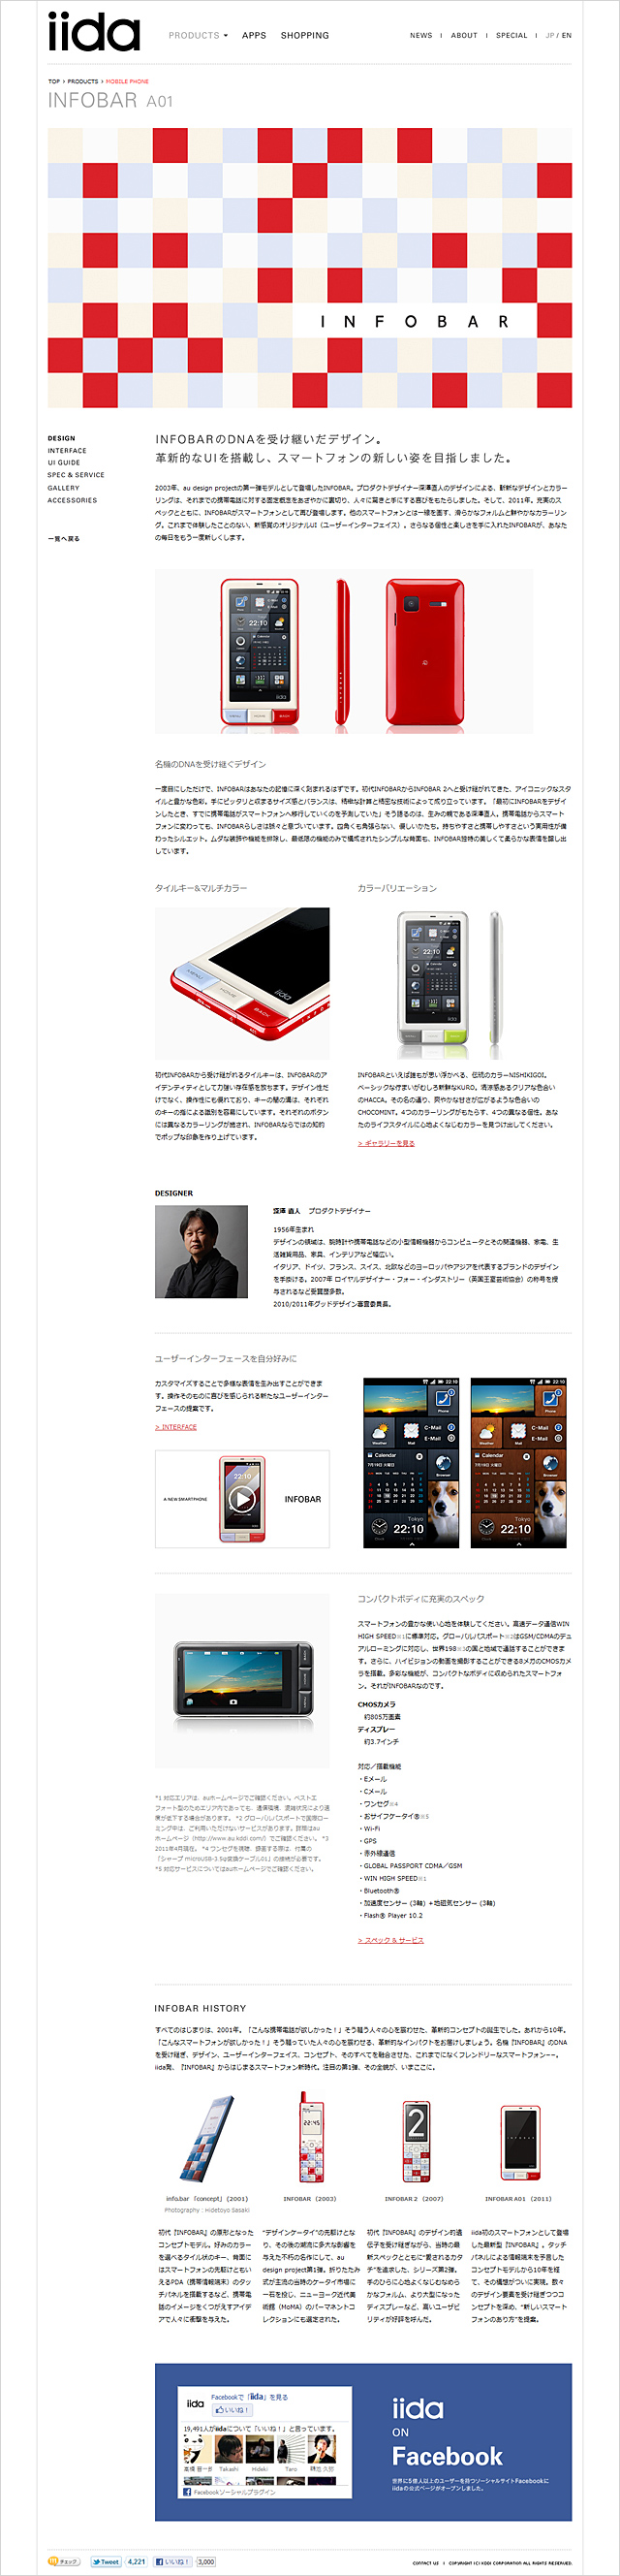 iida-products-infobar